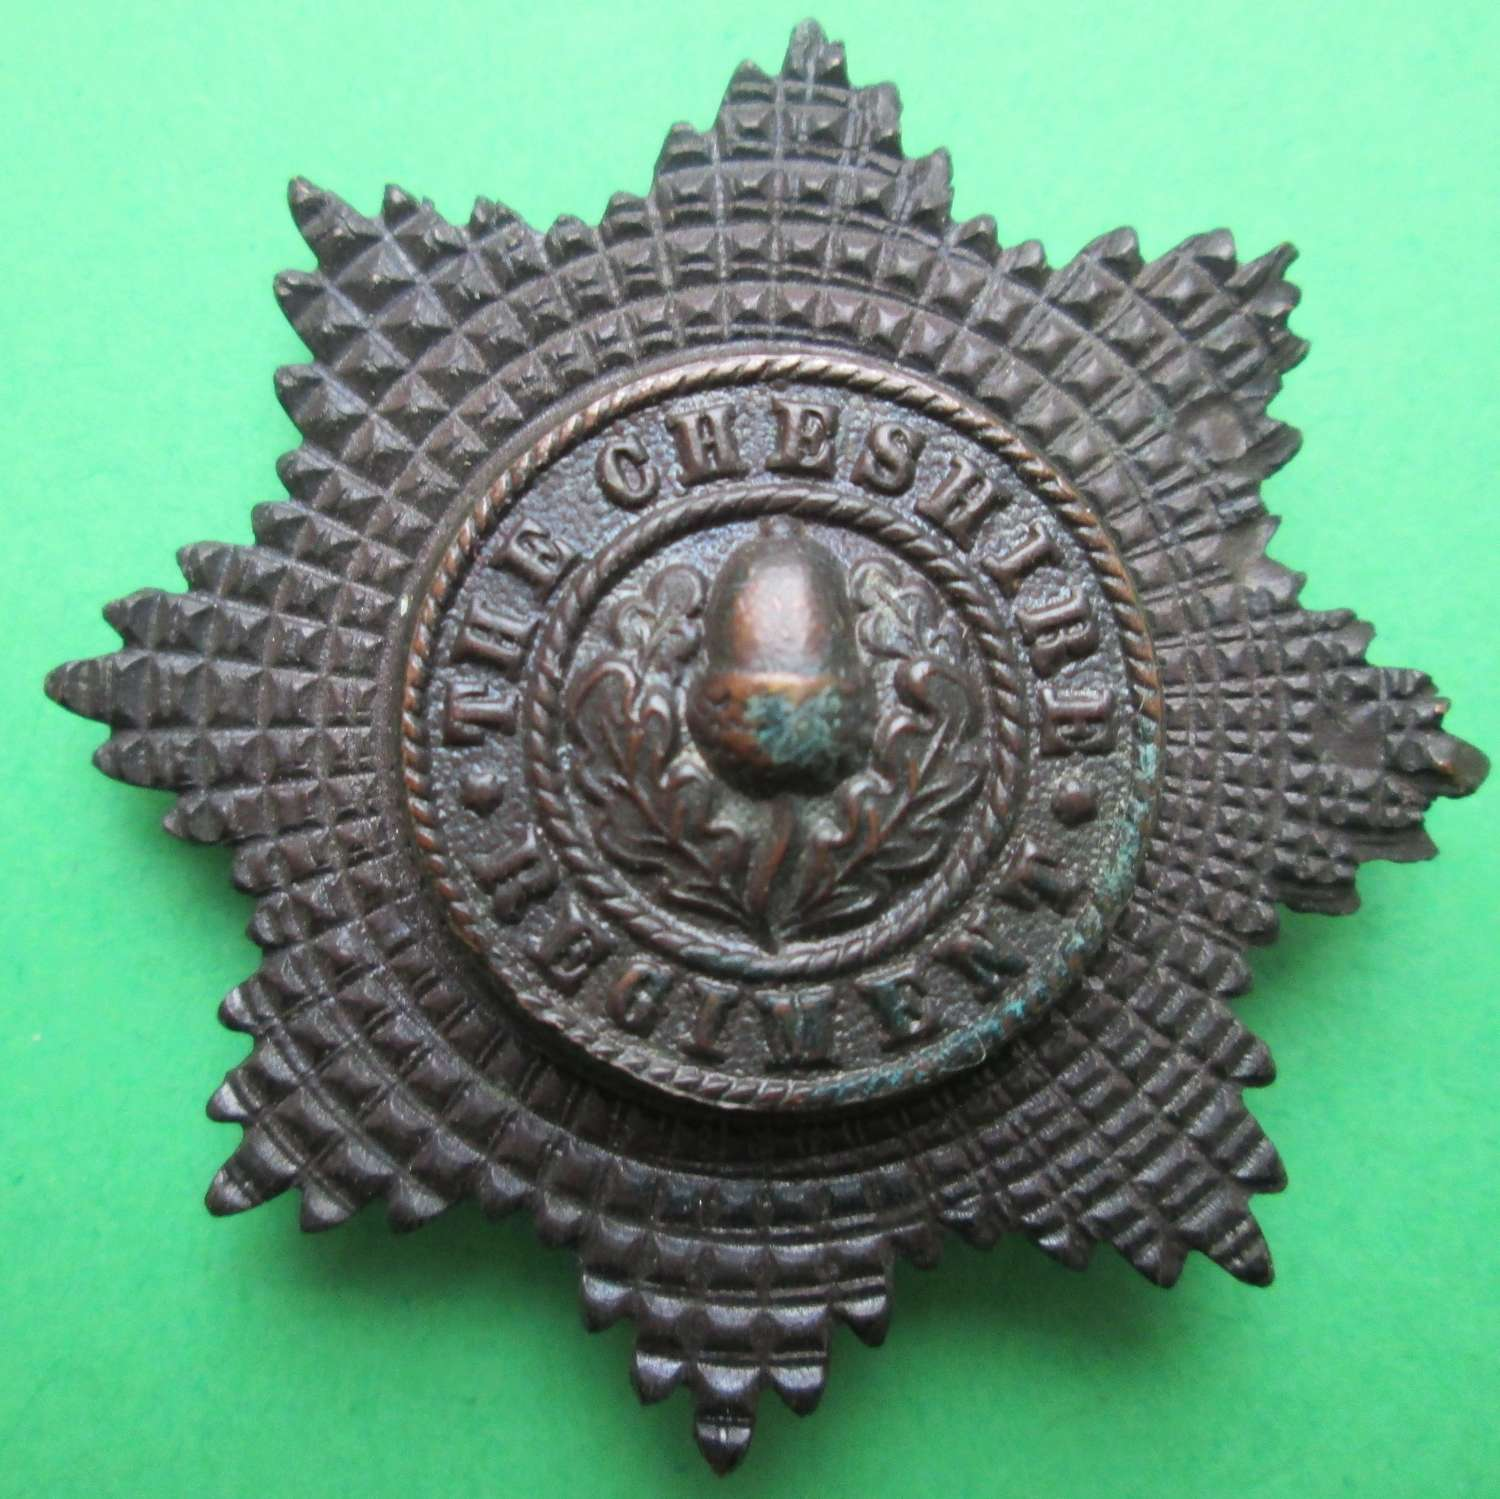 AN OFFICER'S CHESHIRE REGIMENT BADGE